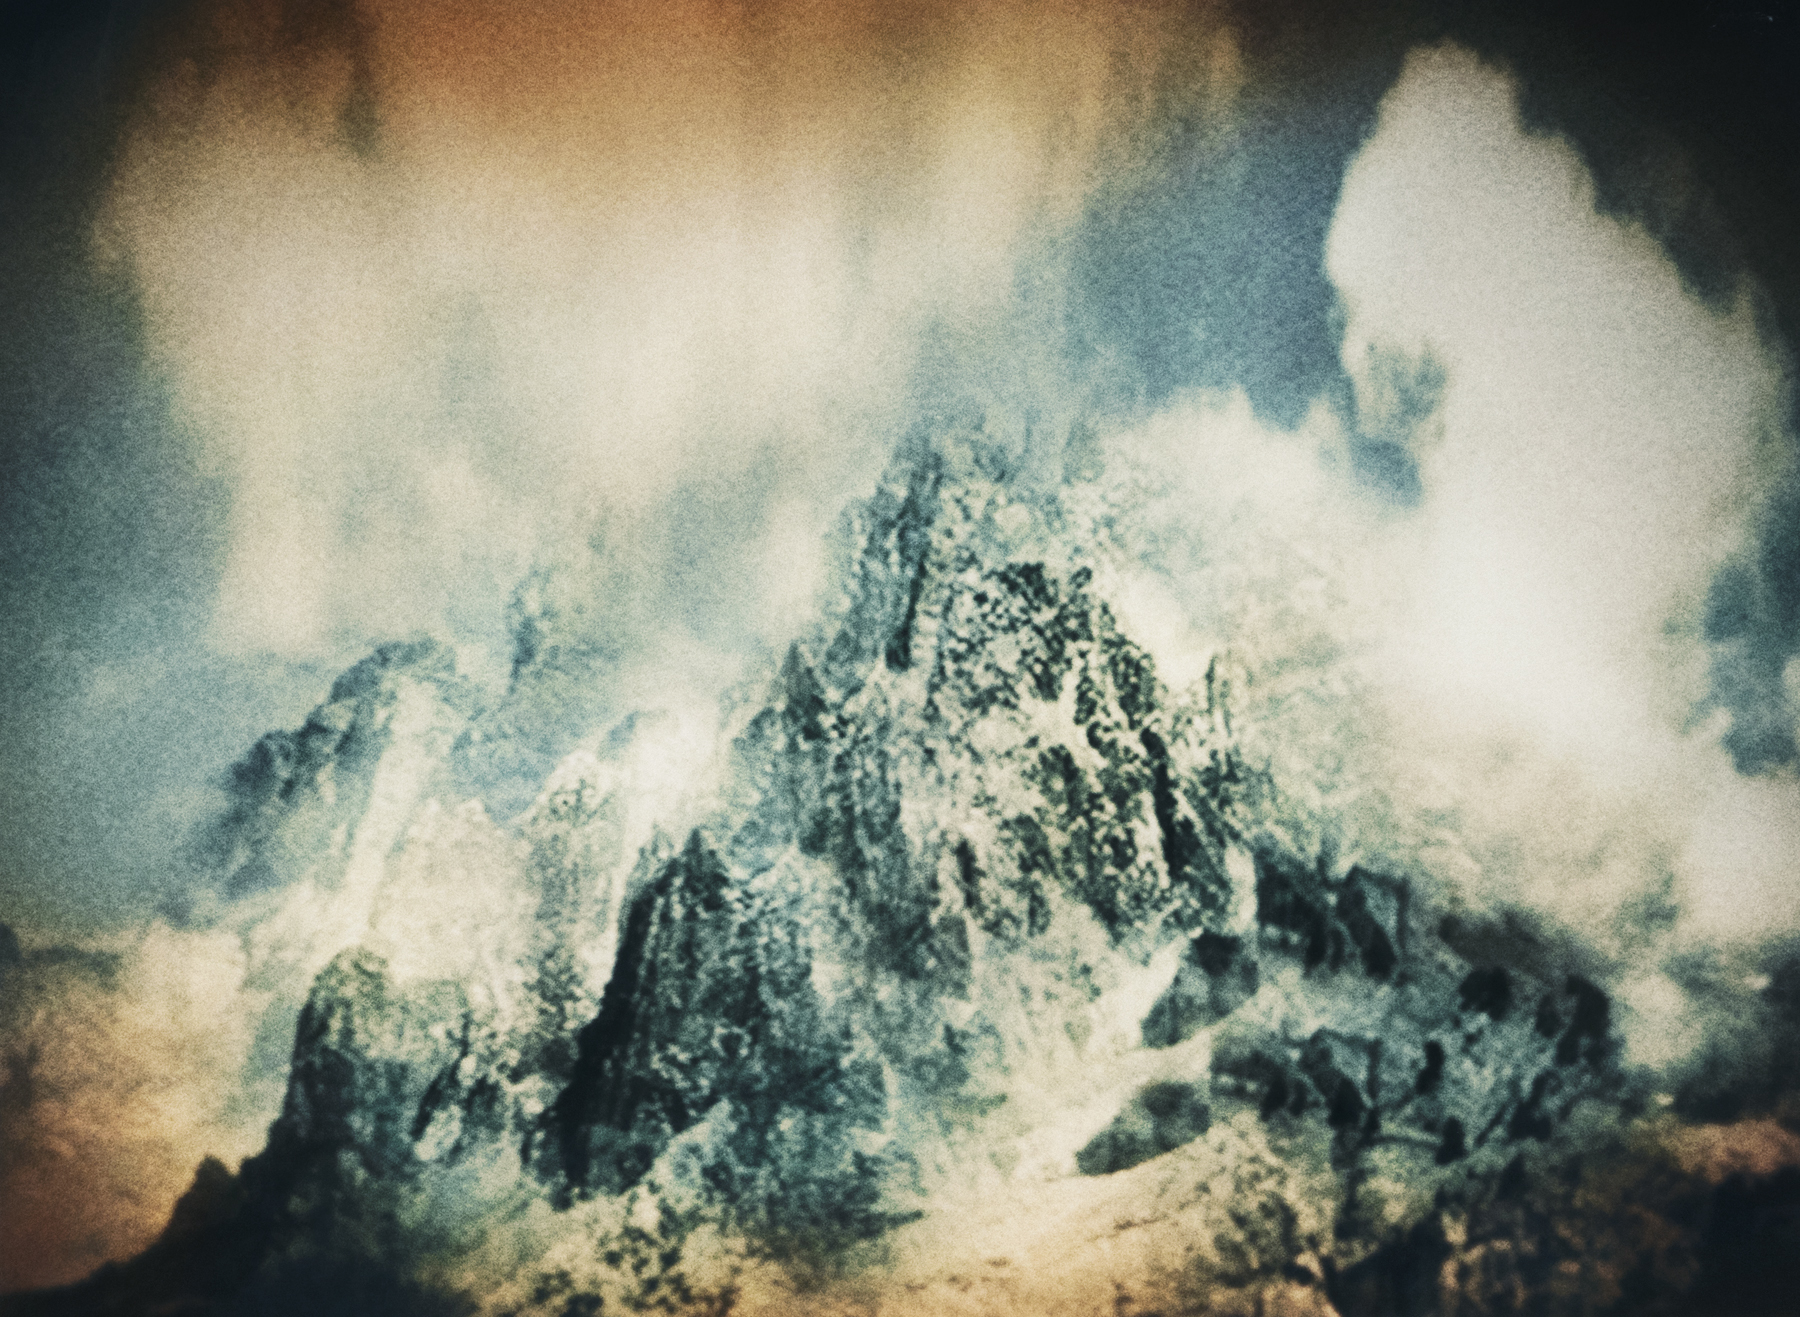 Jacob Felländer   When it all falls where will you be? When paper walls make the silence grow, who will you hold?  Nuptse Peak, Himalaya, 2016 Archival Pigment Print 110 x 135 cm Edition 3+1